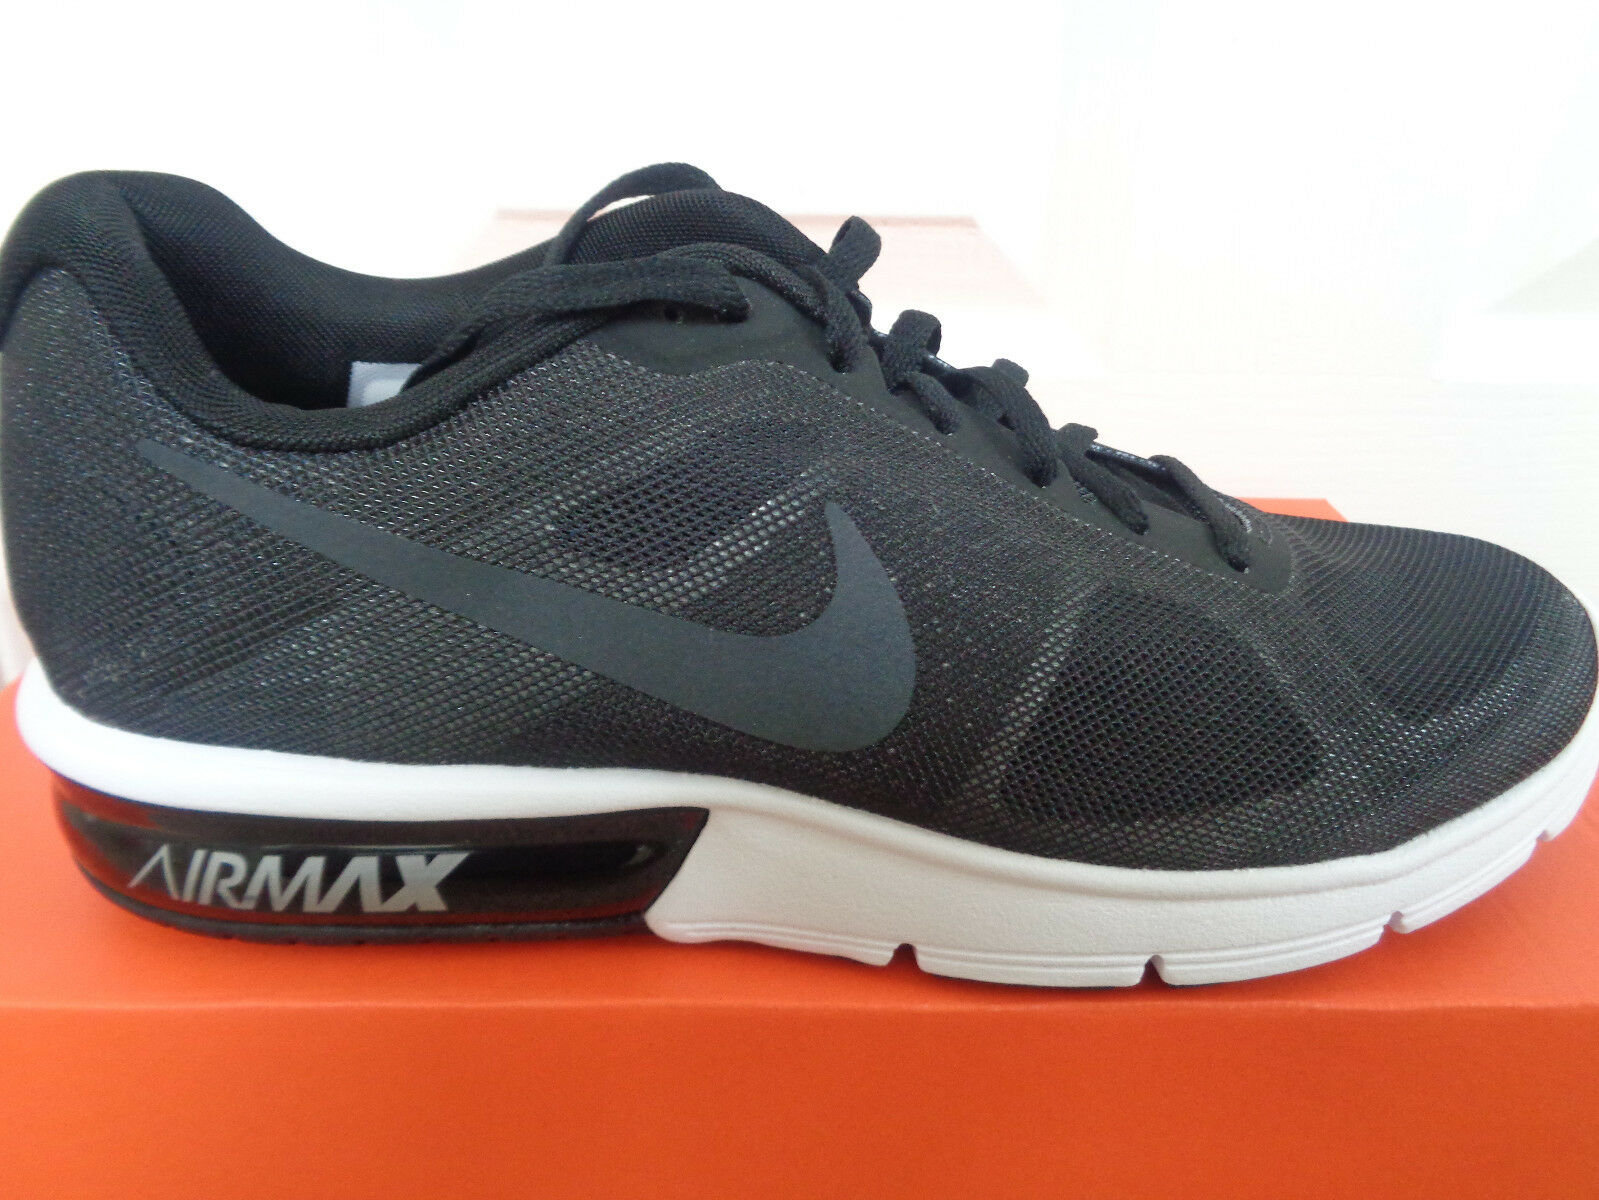 Nike Air Max Sequent trainers chaussures 719916 008 uk 5.5 eu 39 us 8 NEW IN BOX